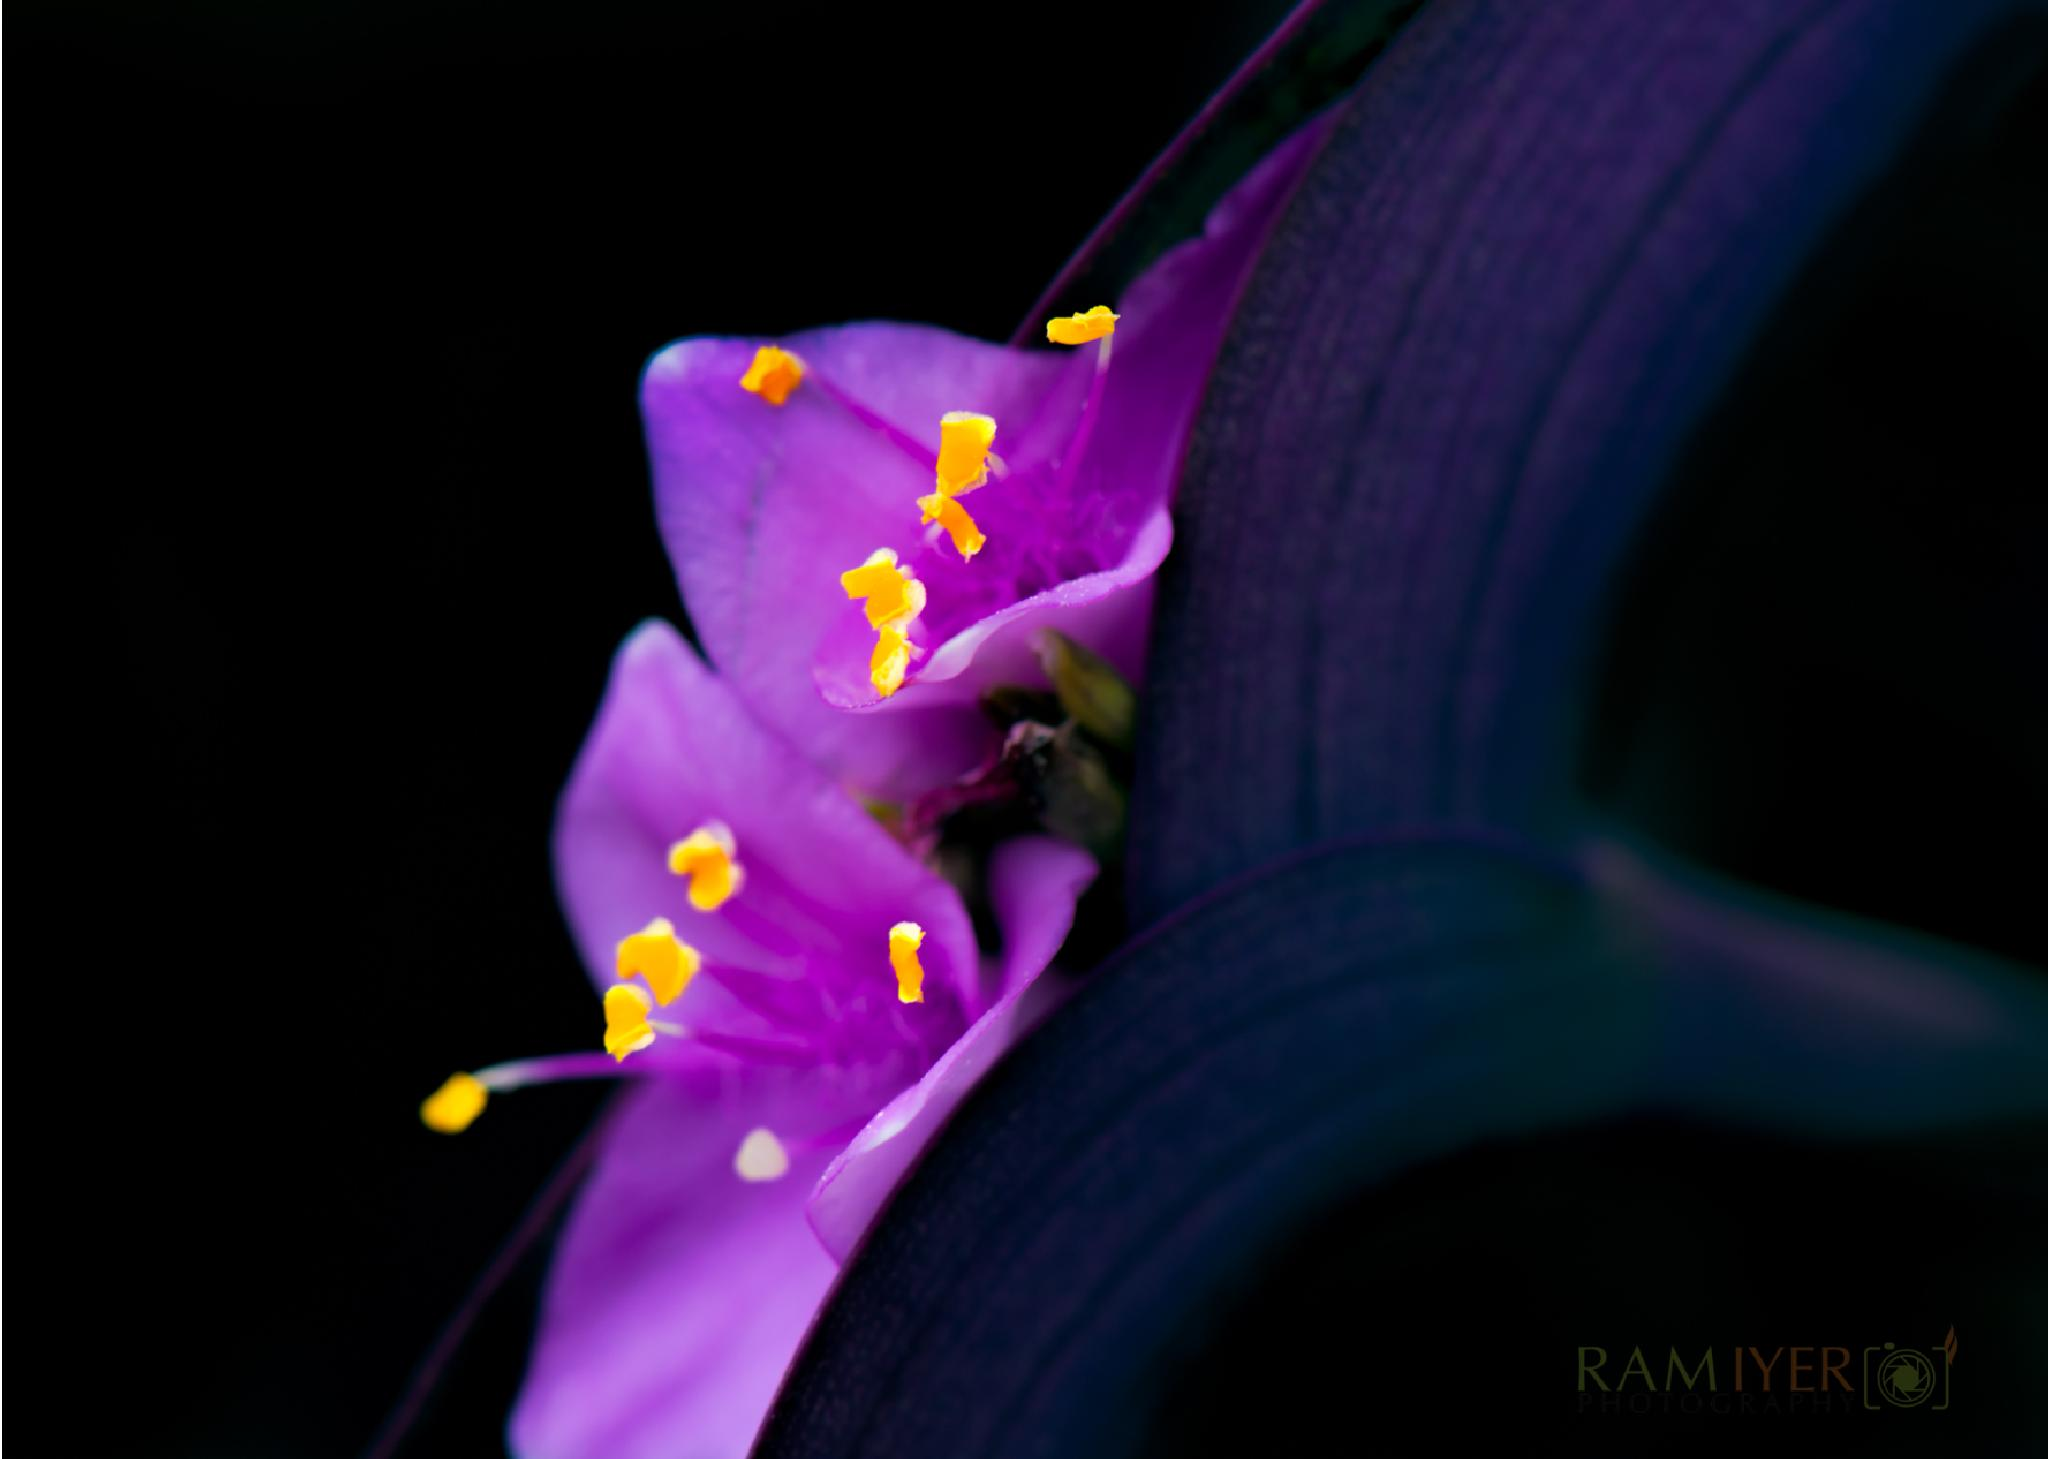 Angle of attack! by Ram Iyer